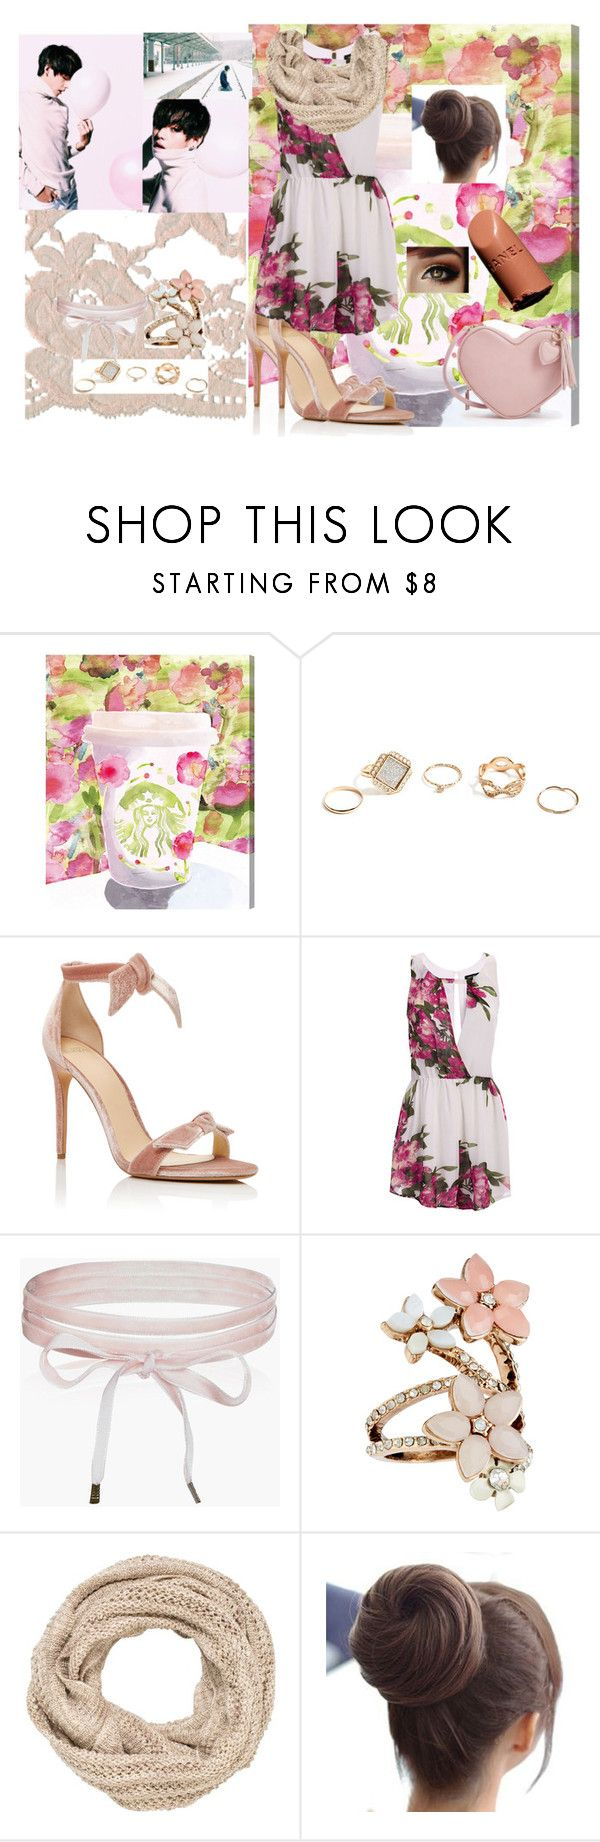 """""""Date with kim taehyung aesthetic"""" by mmtoocute ❤ liked on Polyvore featuring Oliver Gal Artist Co., GUESS, Alexandre Birman, Boohoo, Accessorize, maurices and Chanel"""